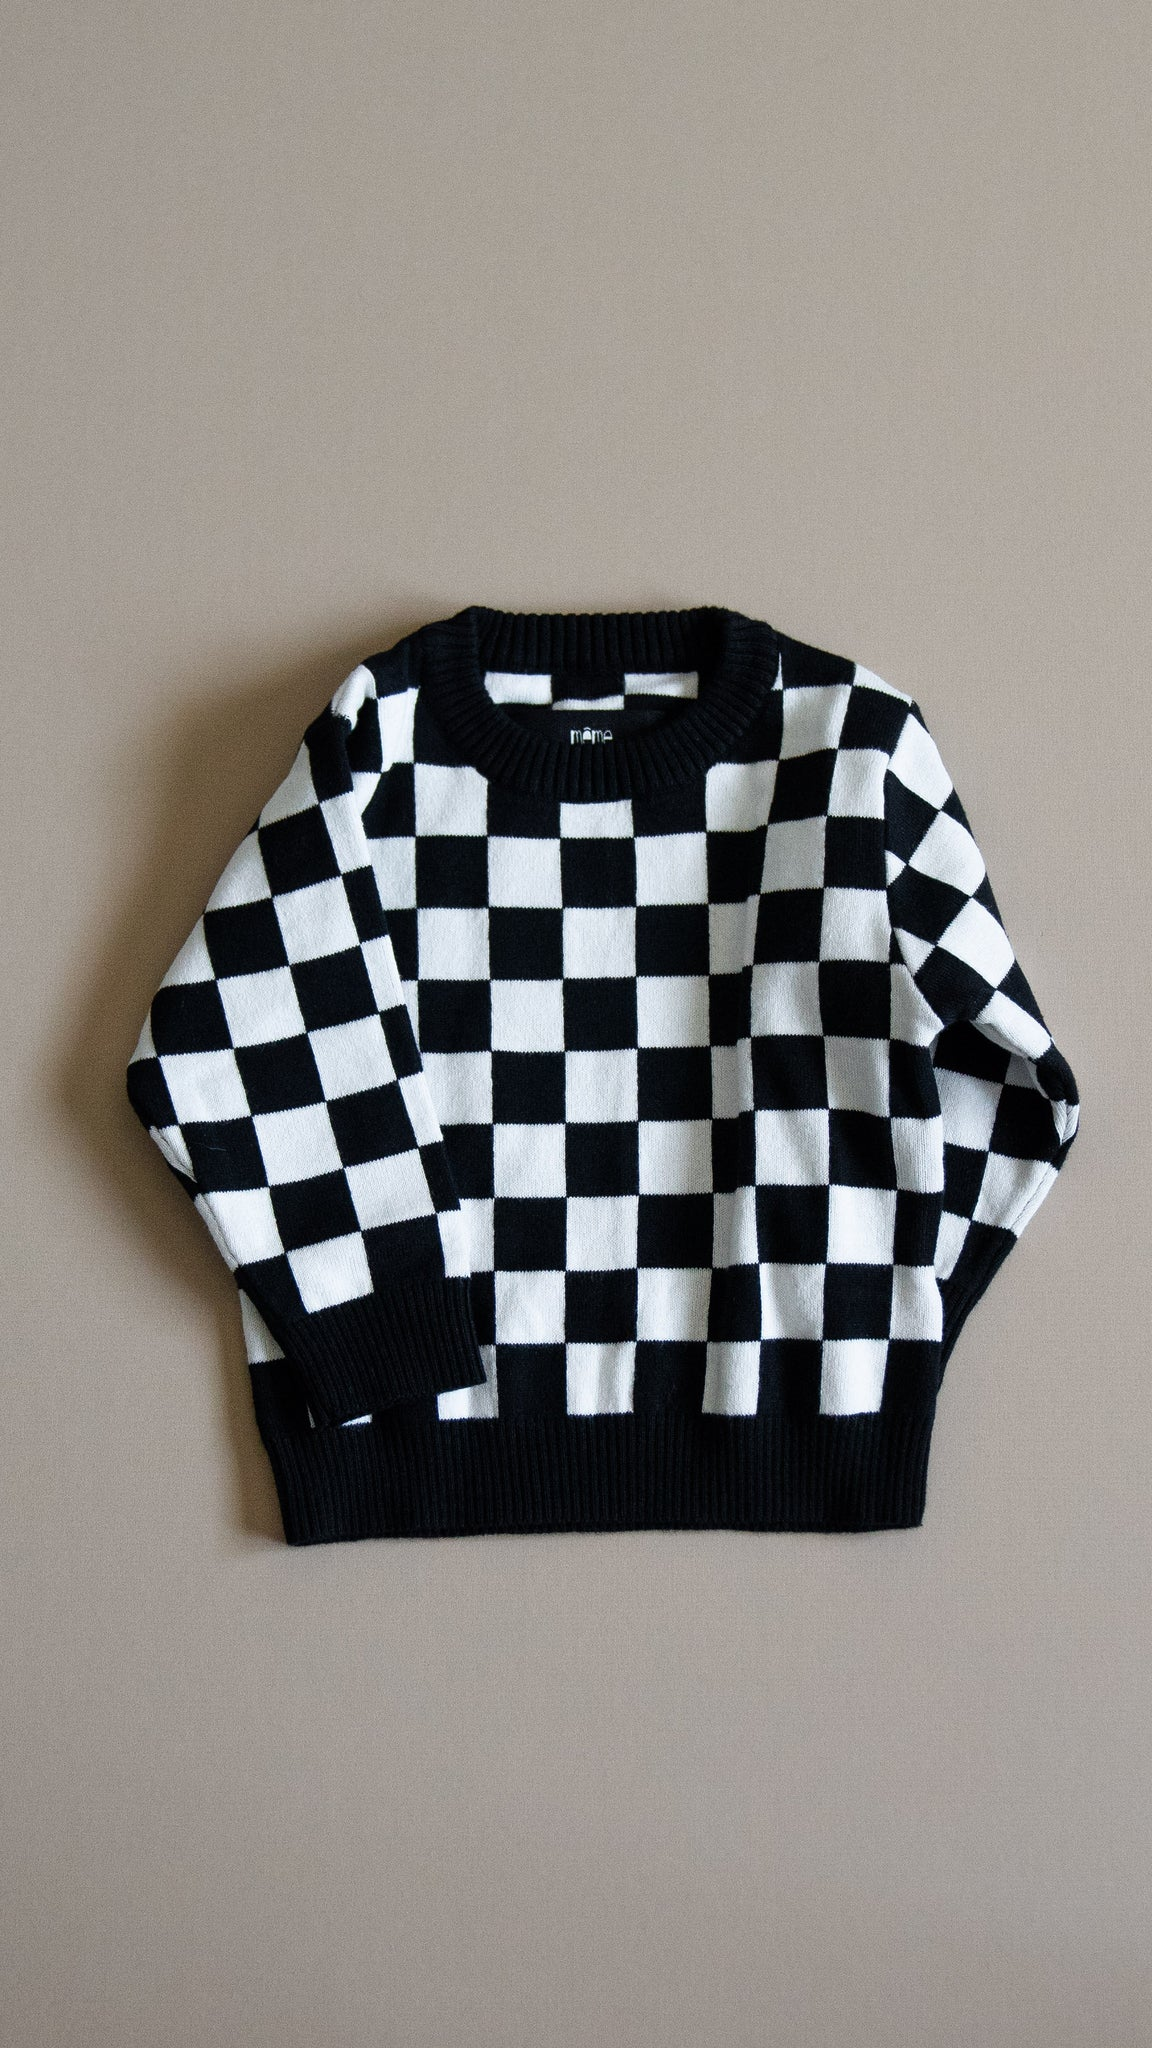 BABY knit sweater / checkers